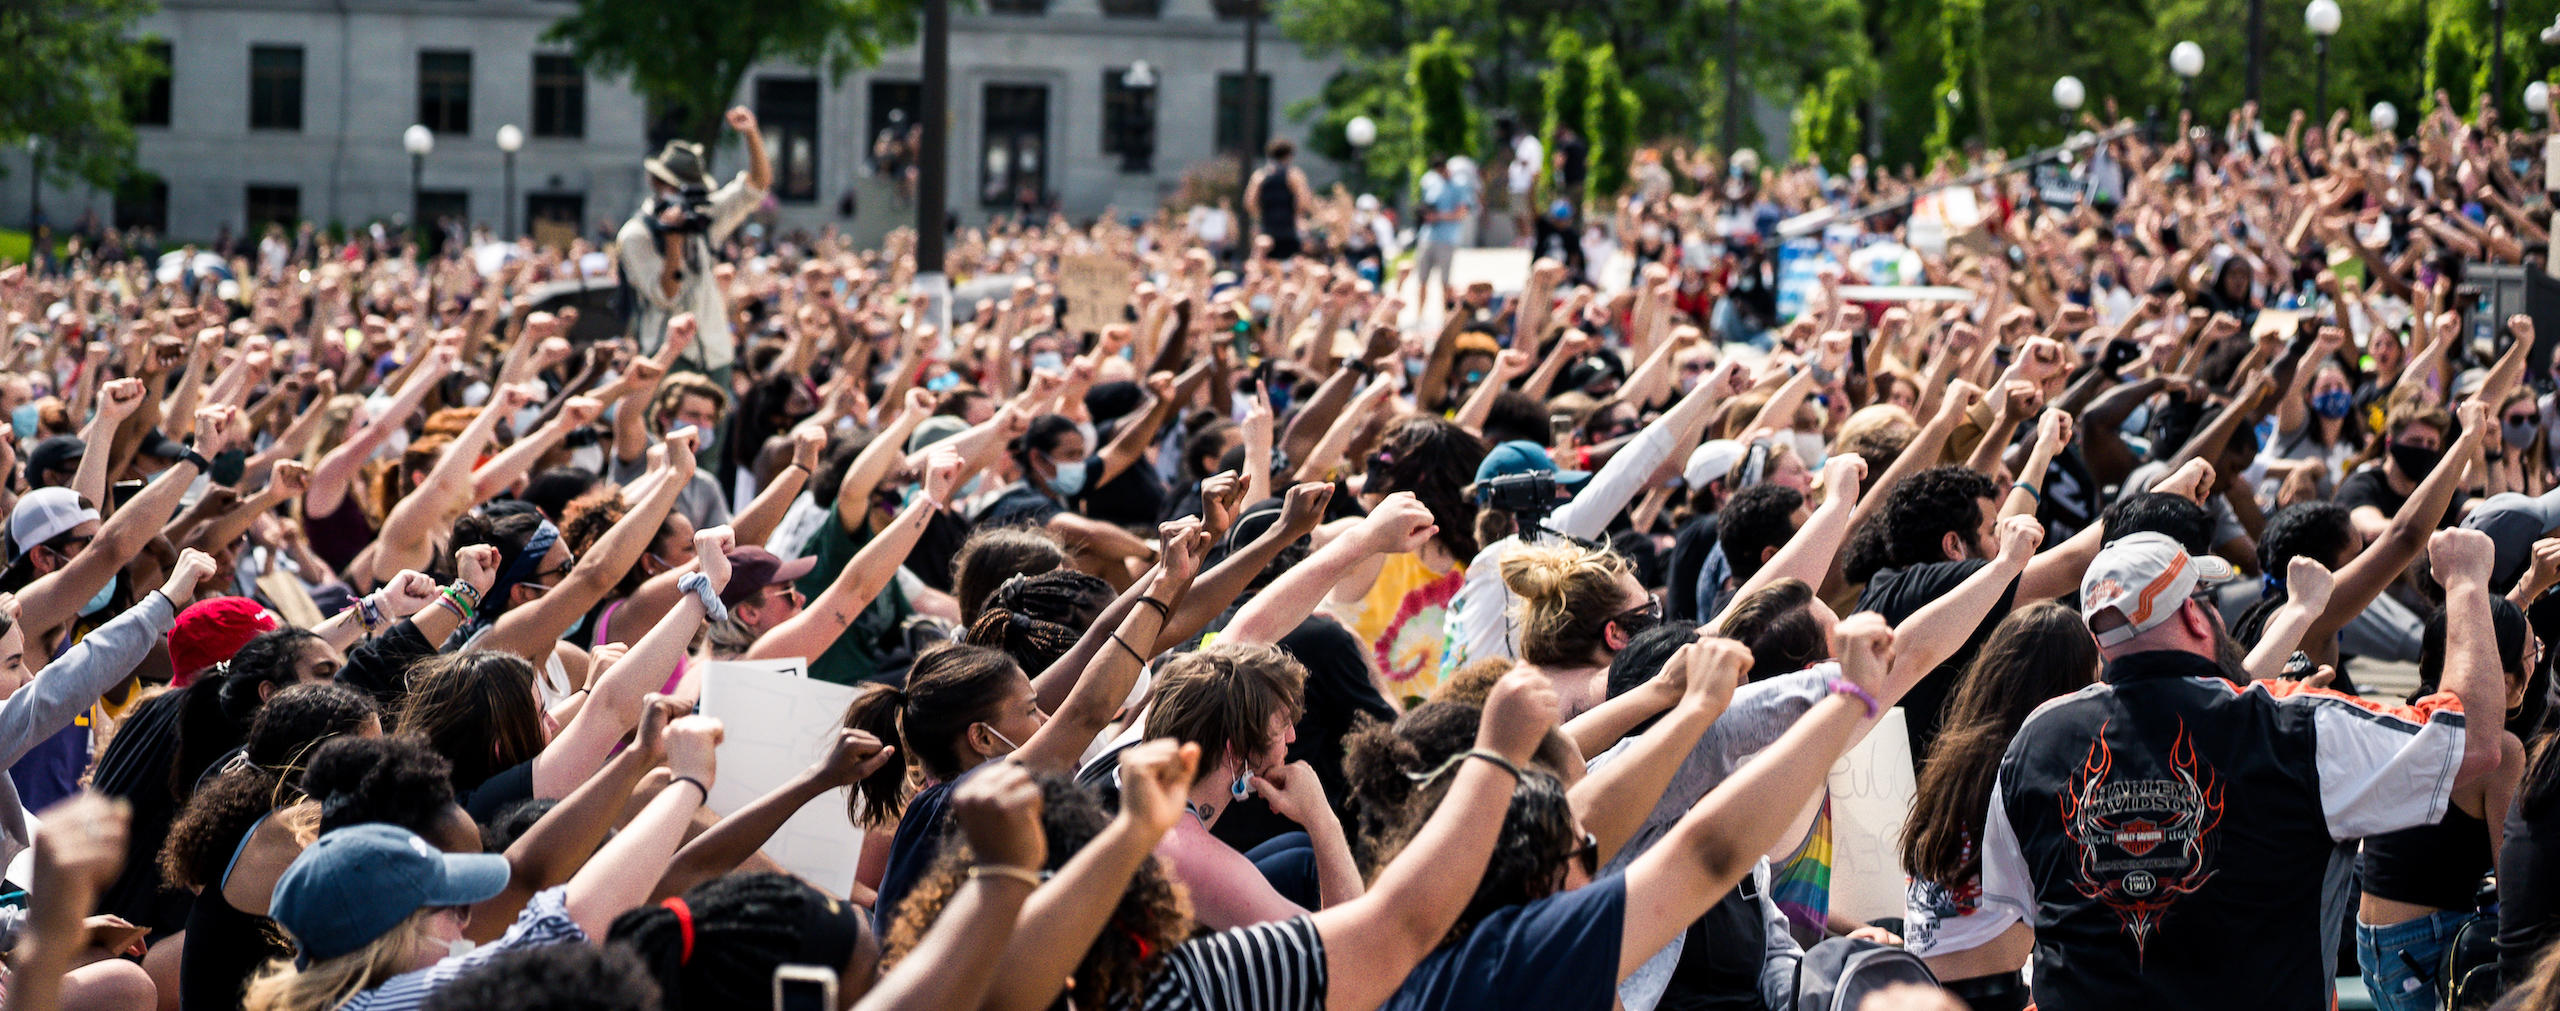 Protestors with hands raised